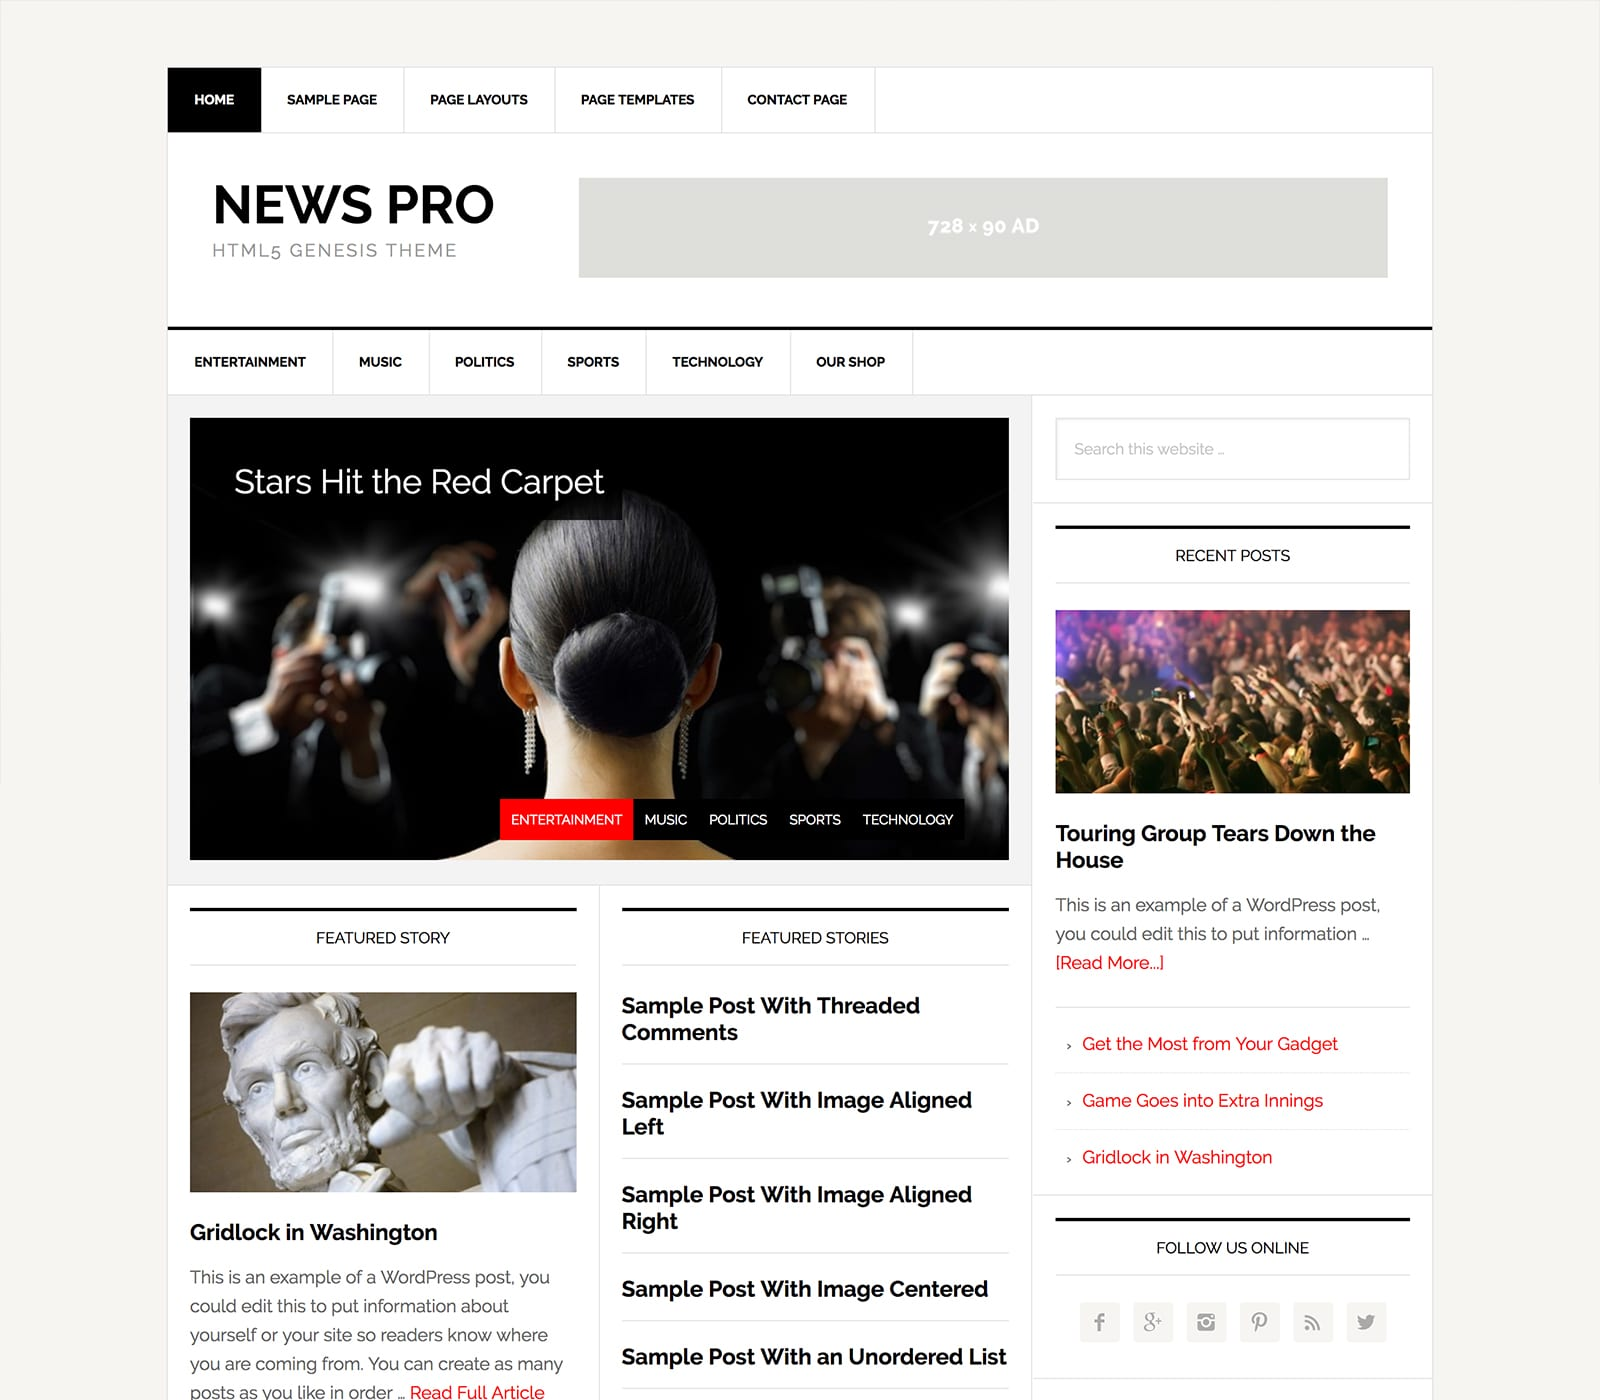 Delivery articles in style with the powerhouse News Pro Theme. Give your readers content in the form of video, articles, audio, and images provided with an eye-popping designed them that offers simple navigation.